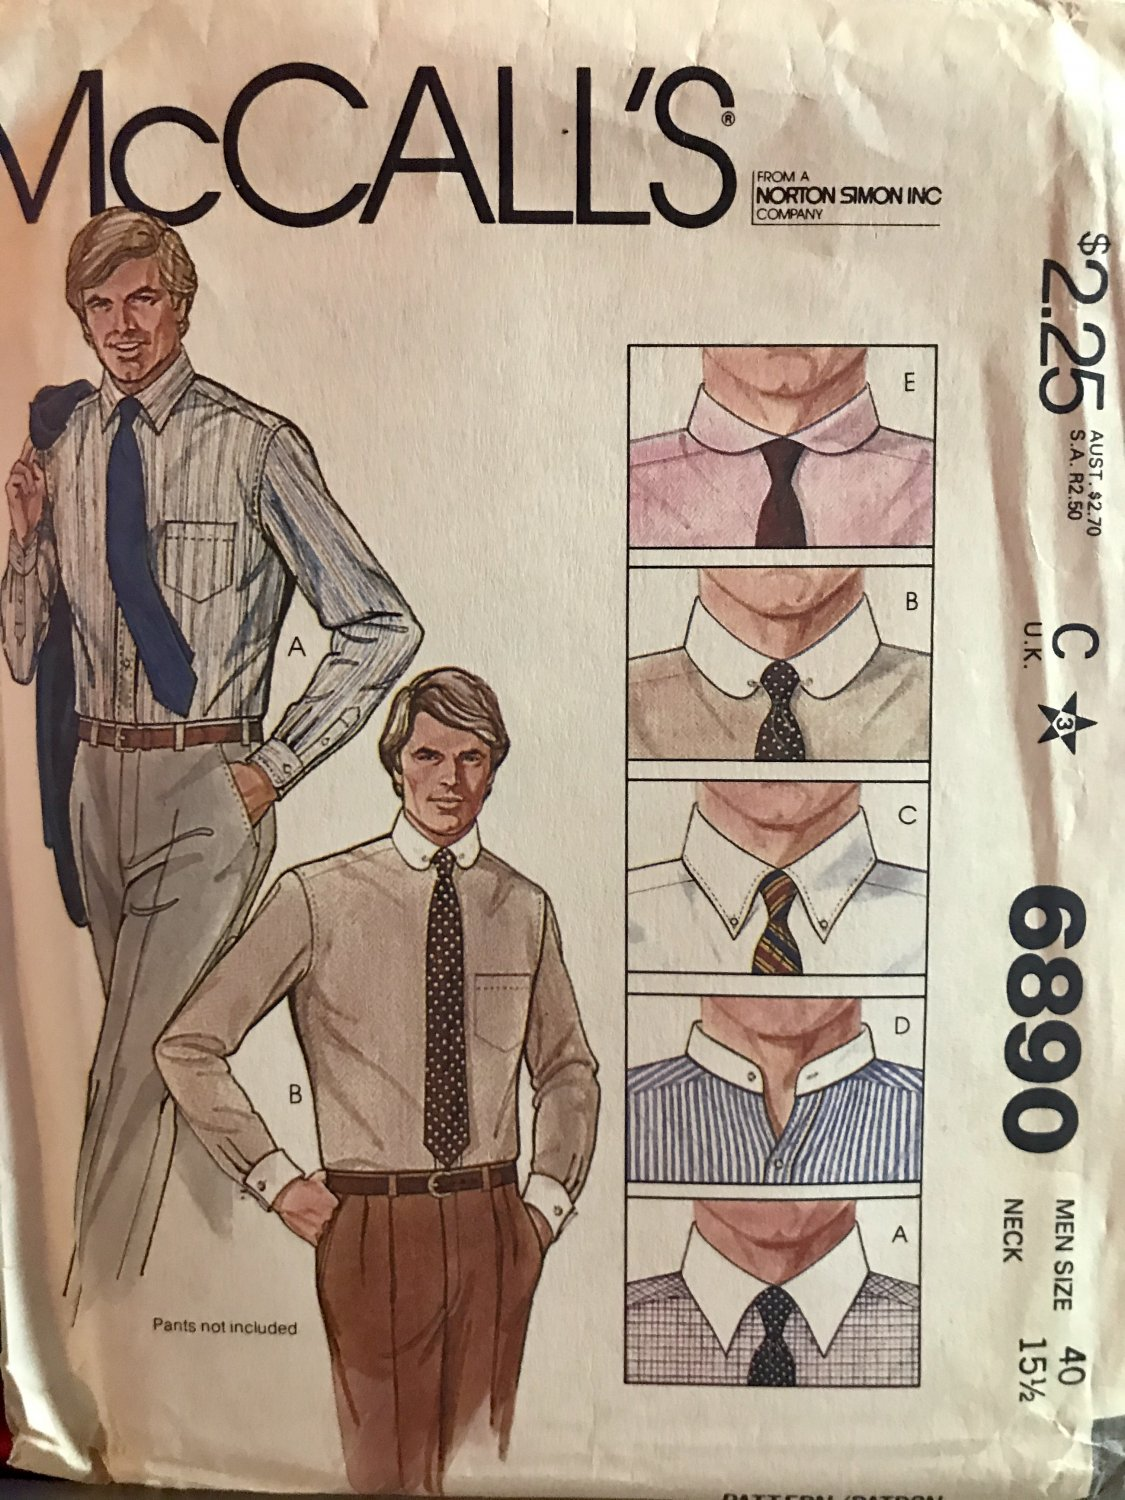 McCall's 6890 Men's Shirt with 5 Collar Variations size 40 sewing pattern